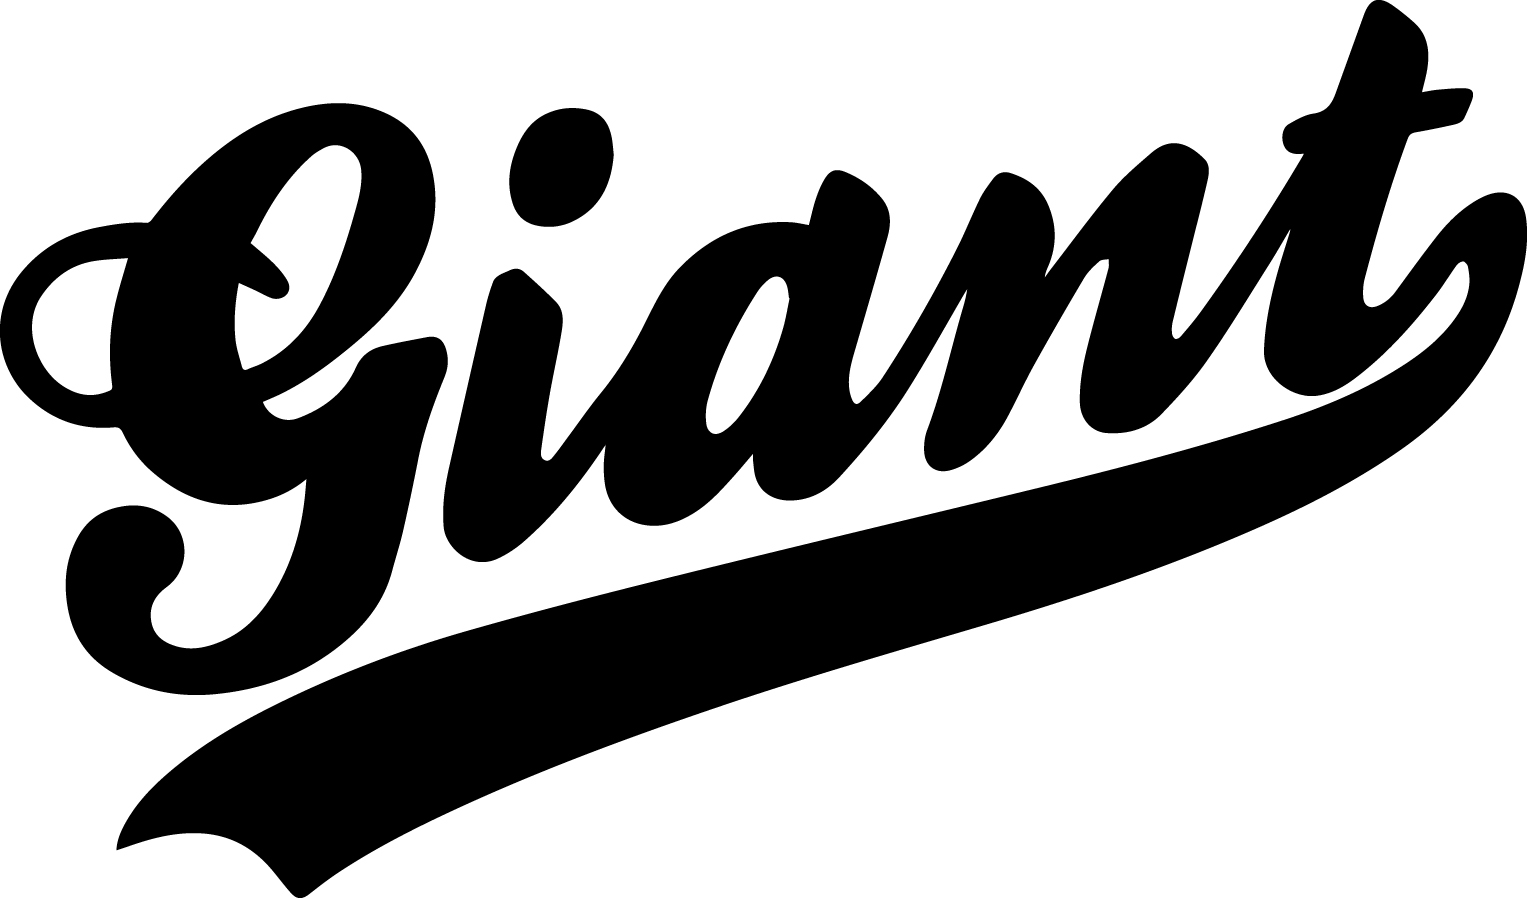 Giant Logo Black.jpg